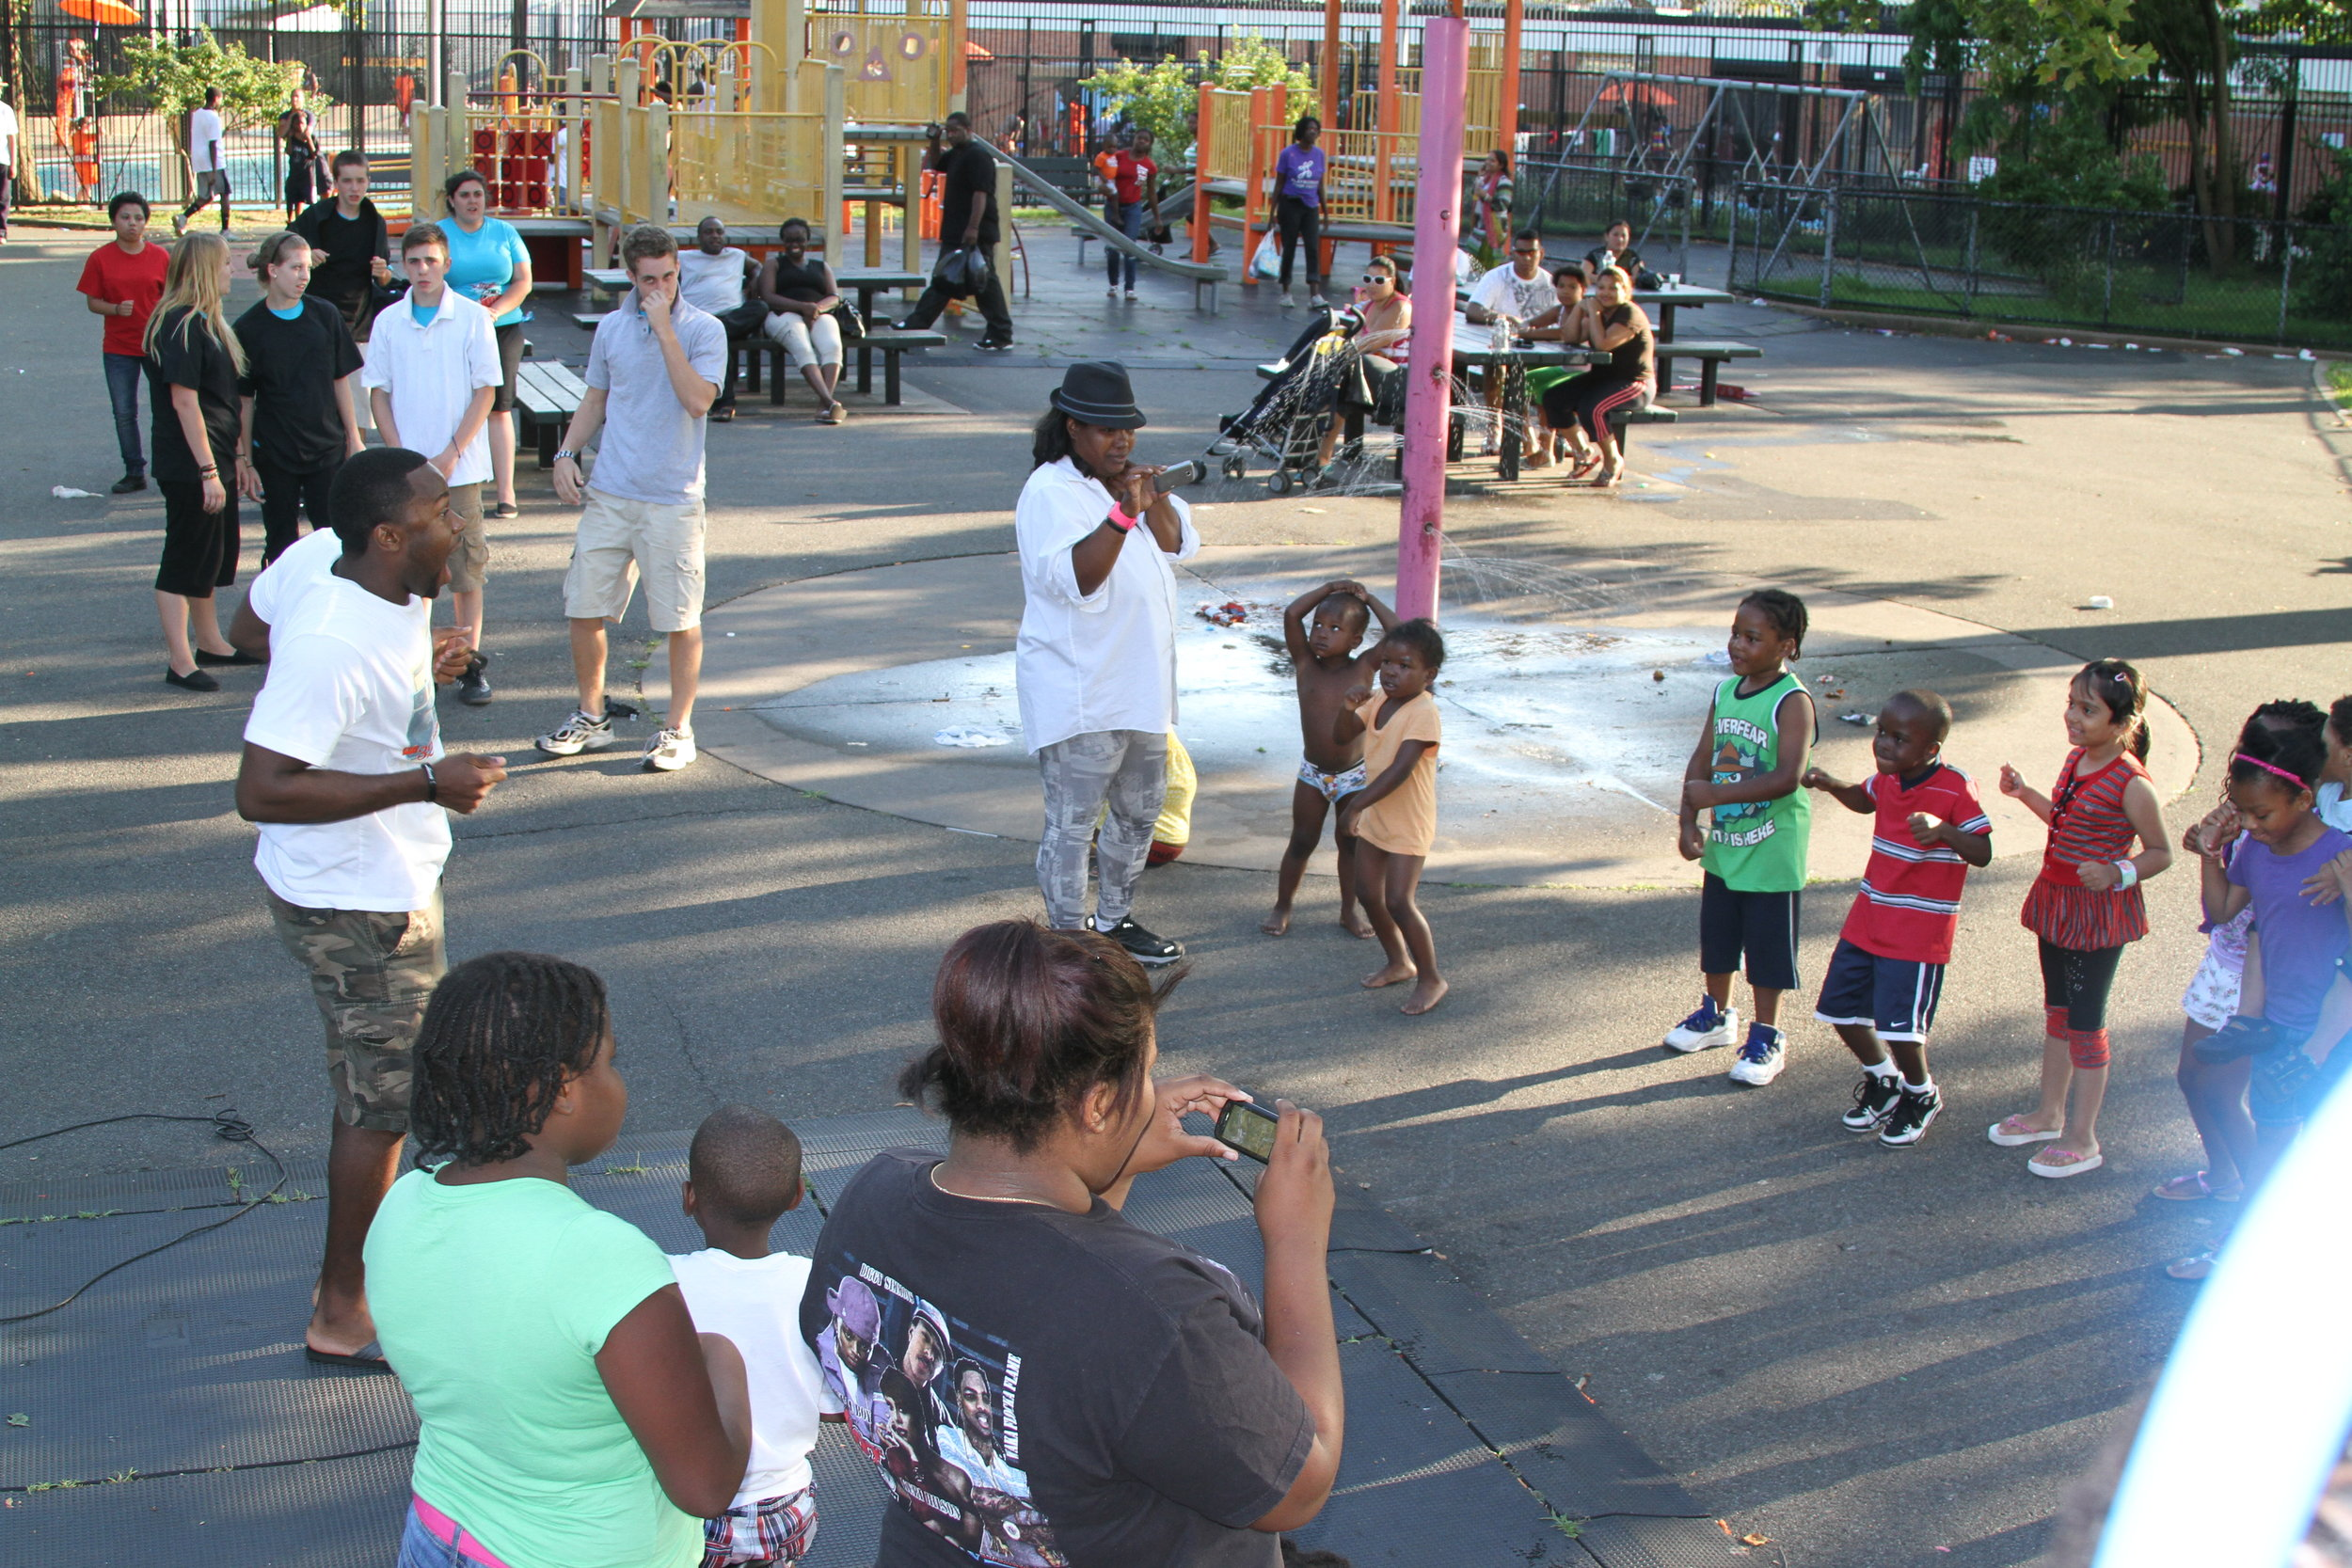 Deo working with a community through JG in Jamaica, Queens, NYC.